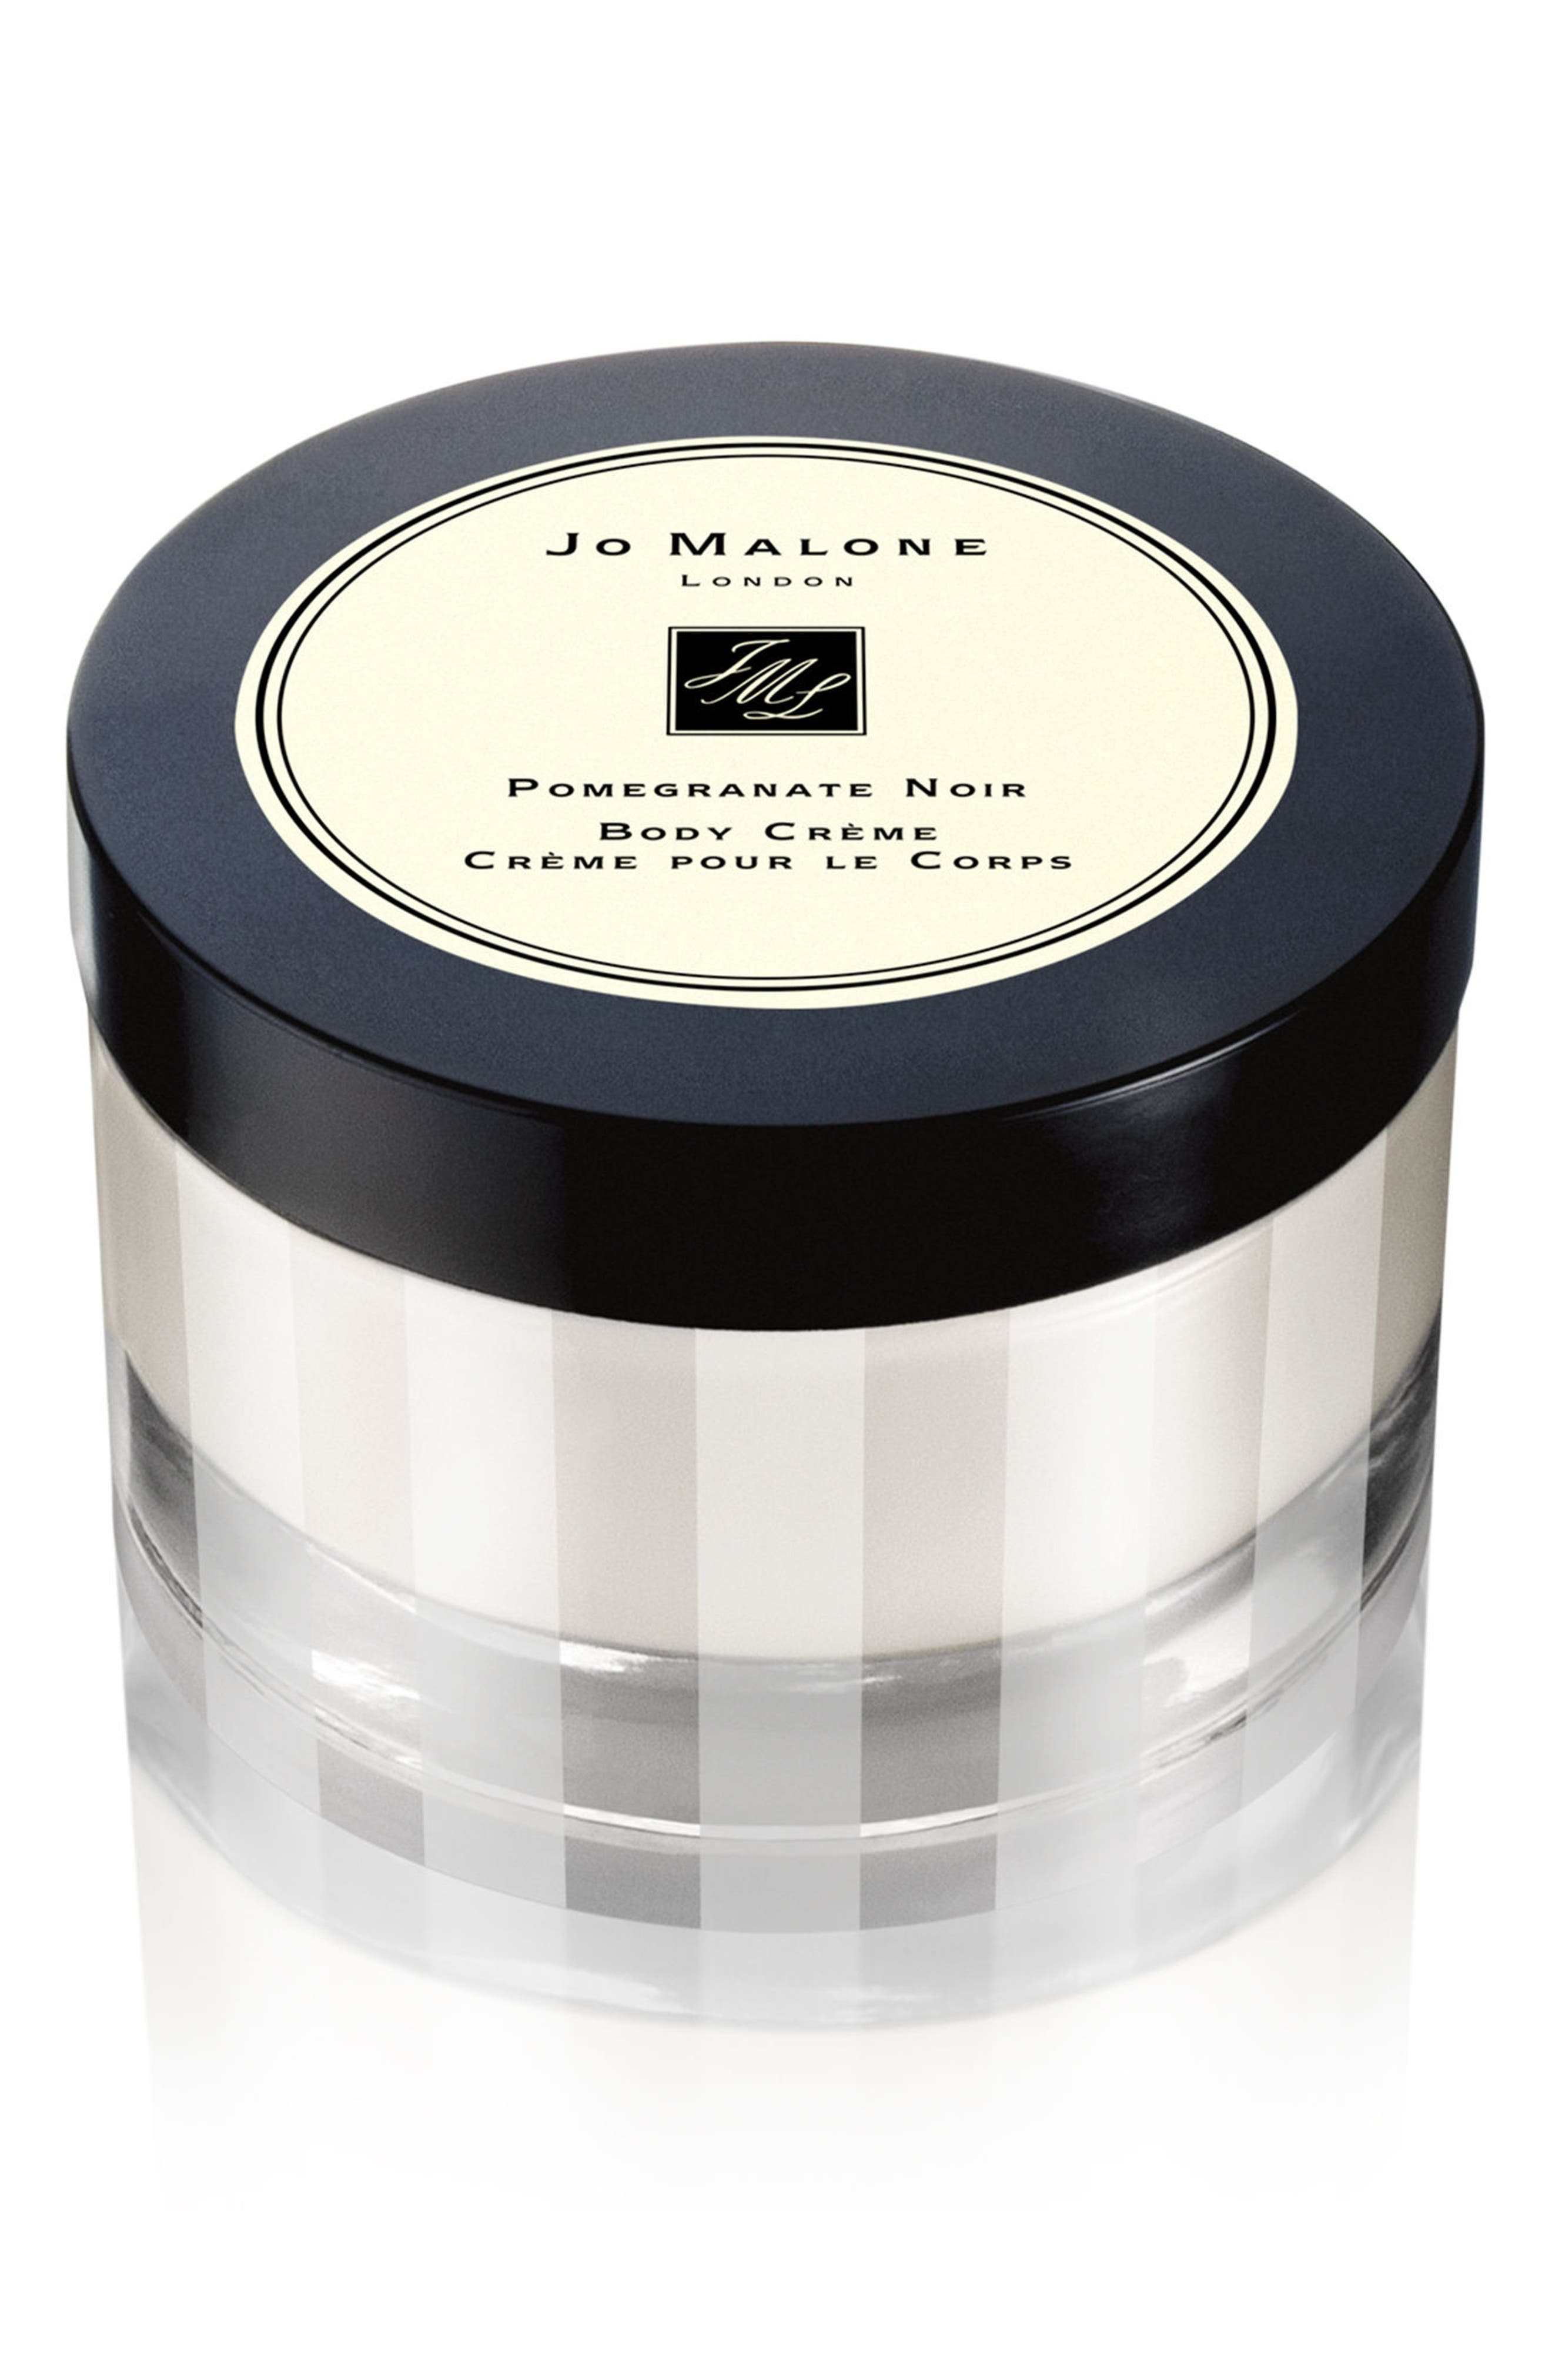 JO MALONE LONDON™ 'Pomegranate Noir' Body Crème